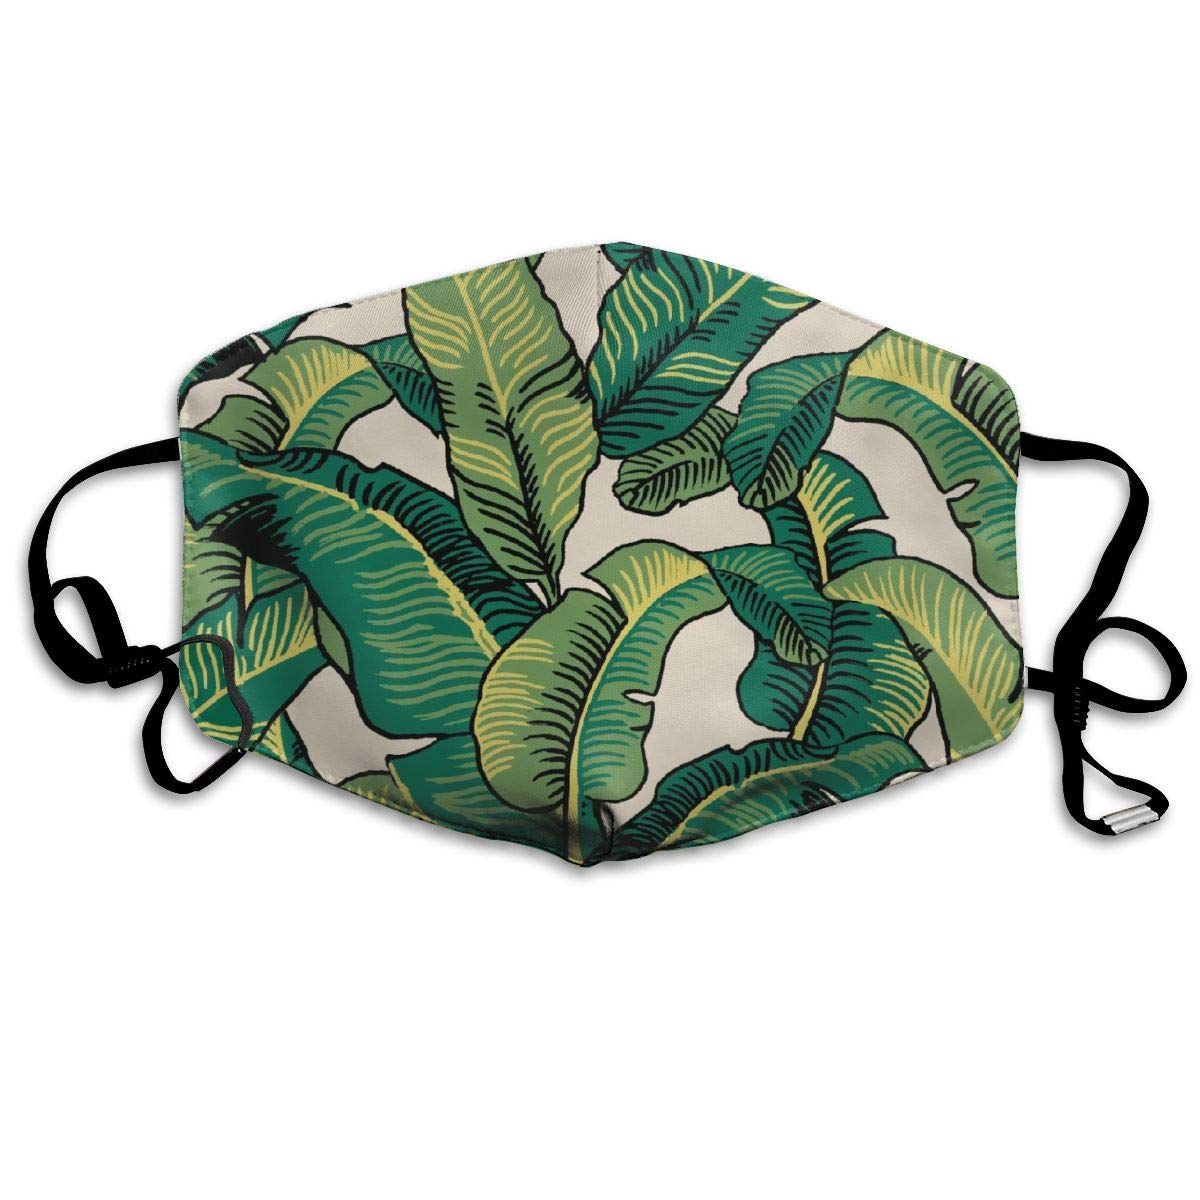 XPEACH Tropical Banana Leaves Washable Reusable Masks Respirator Comfy Protective Breath Healthy Safety Warm Windpro of Mask